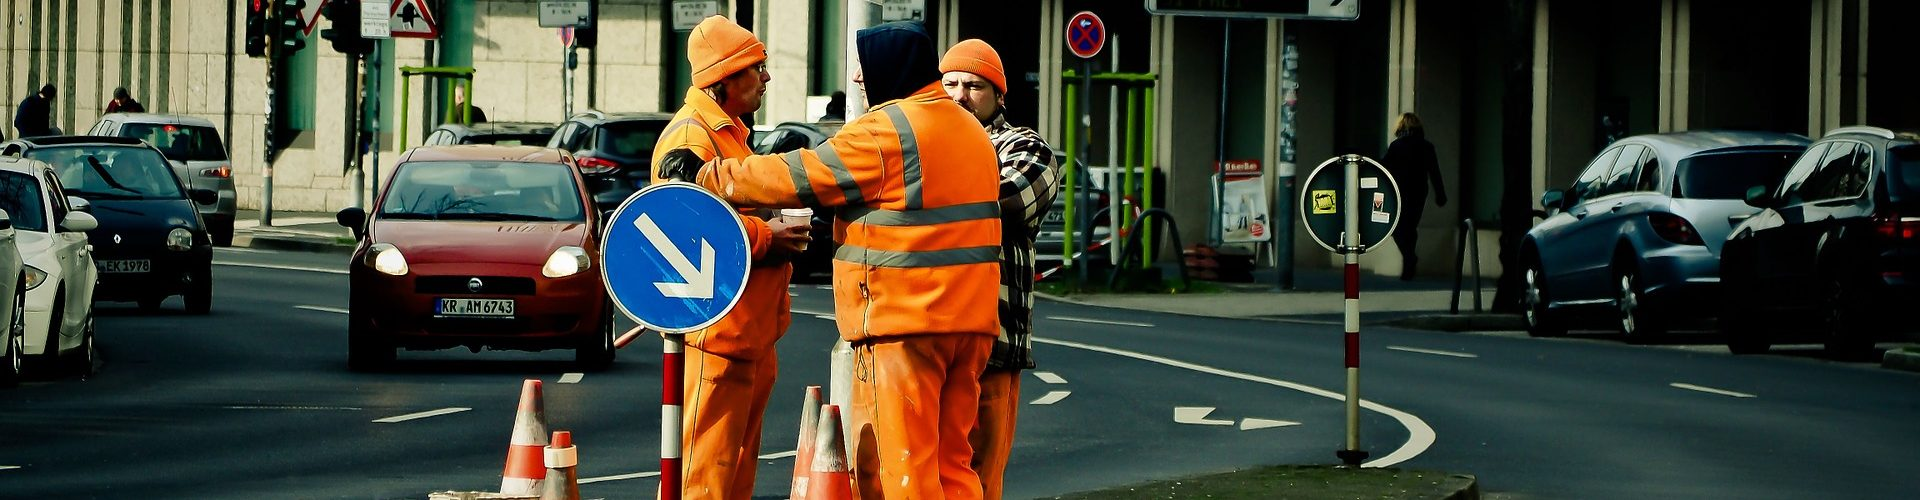 workers-1210670_1920